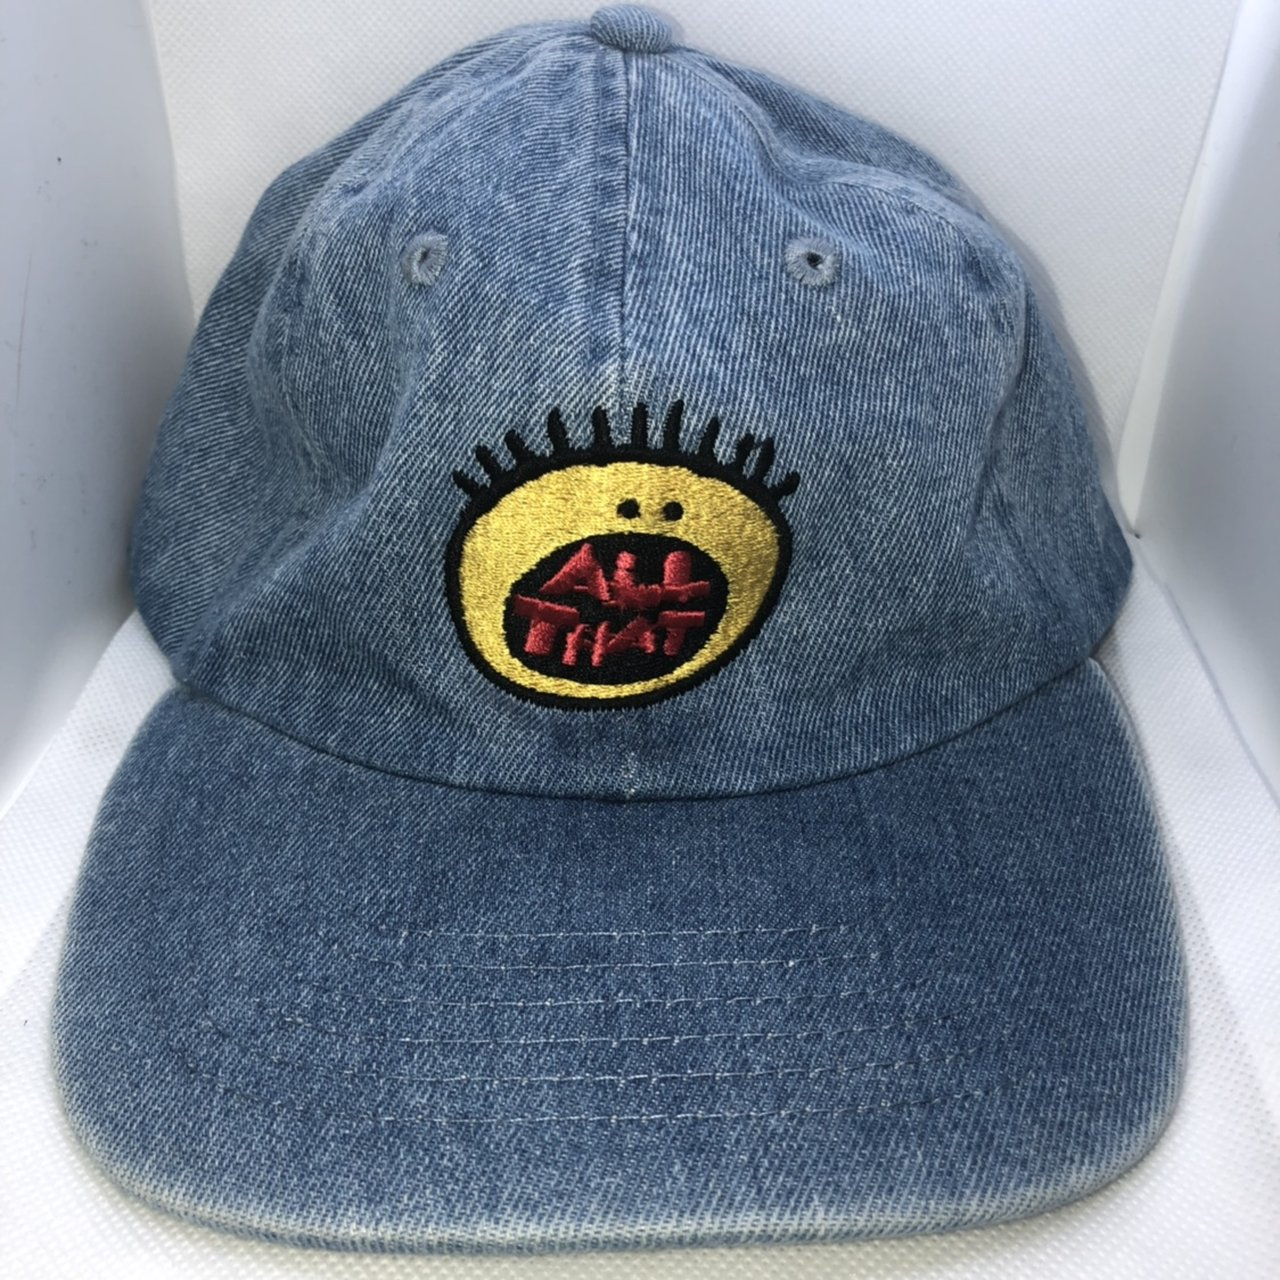 90 s style All That dad hat denim blue •worn once• no Has - Depop 1cb89a51f1f1